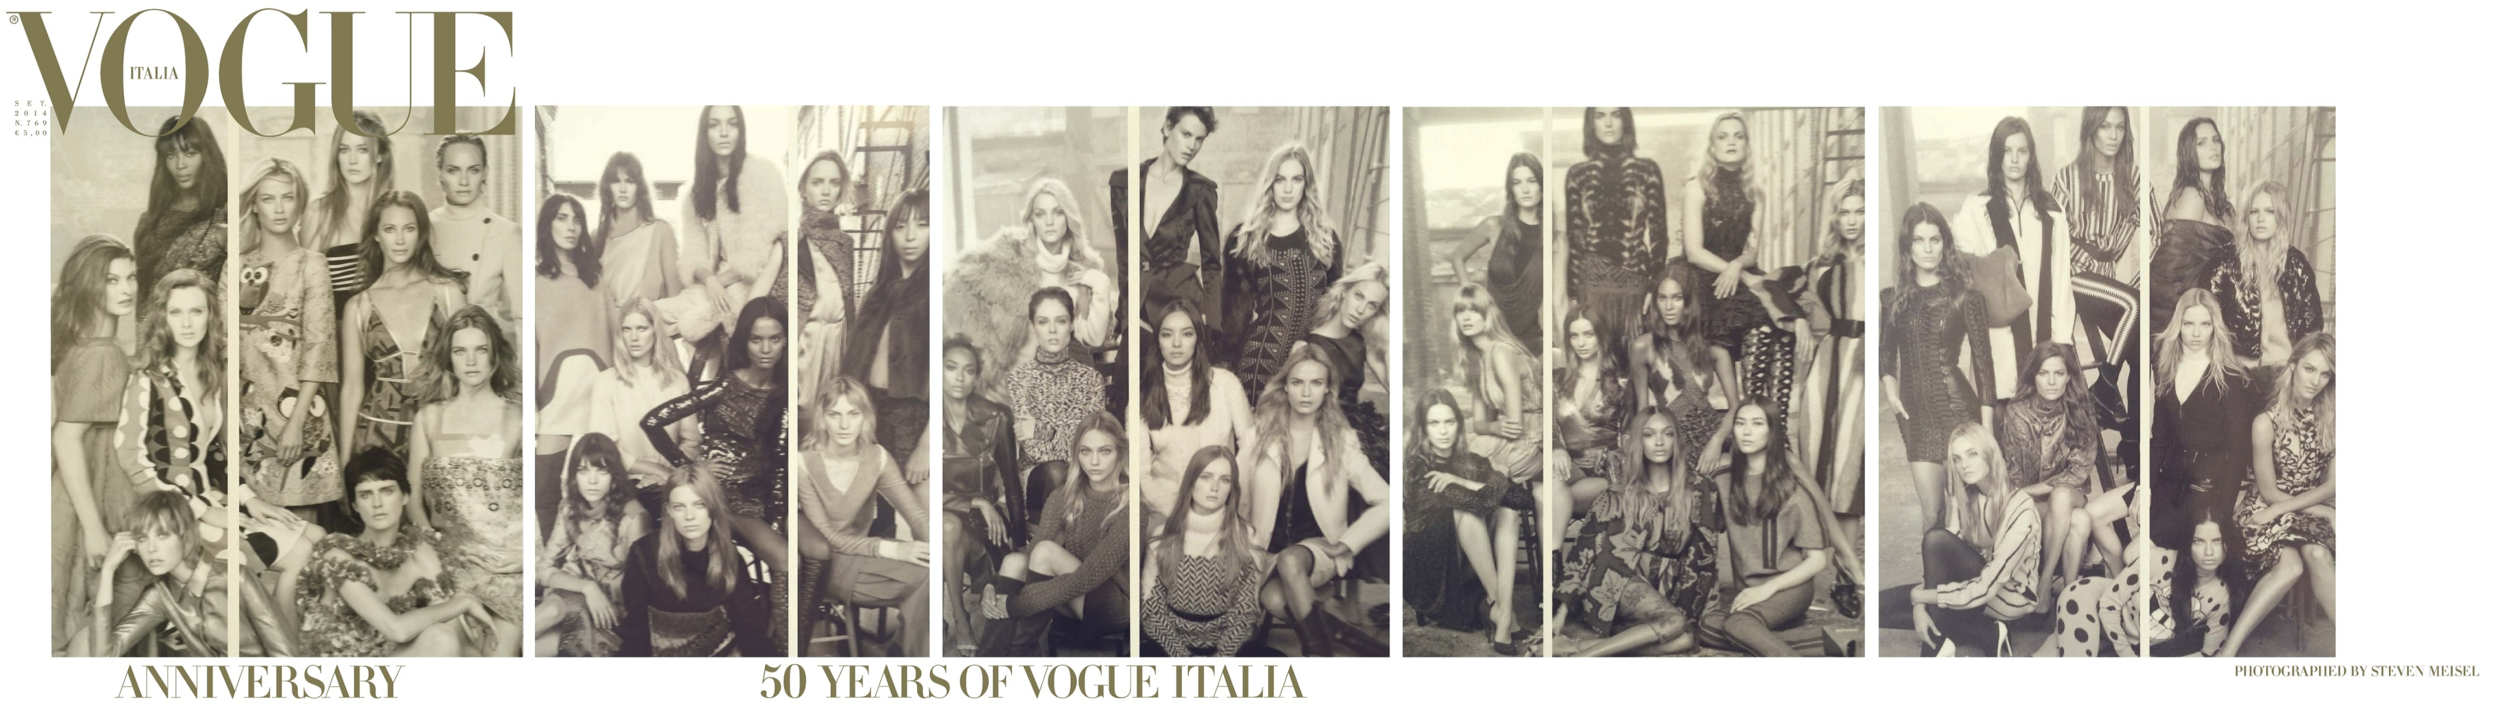 Iselin Steiro_Vogue Italia 50 years anniversary cover_Steven Meisel.png